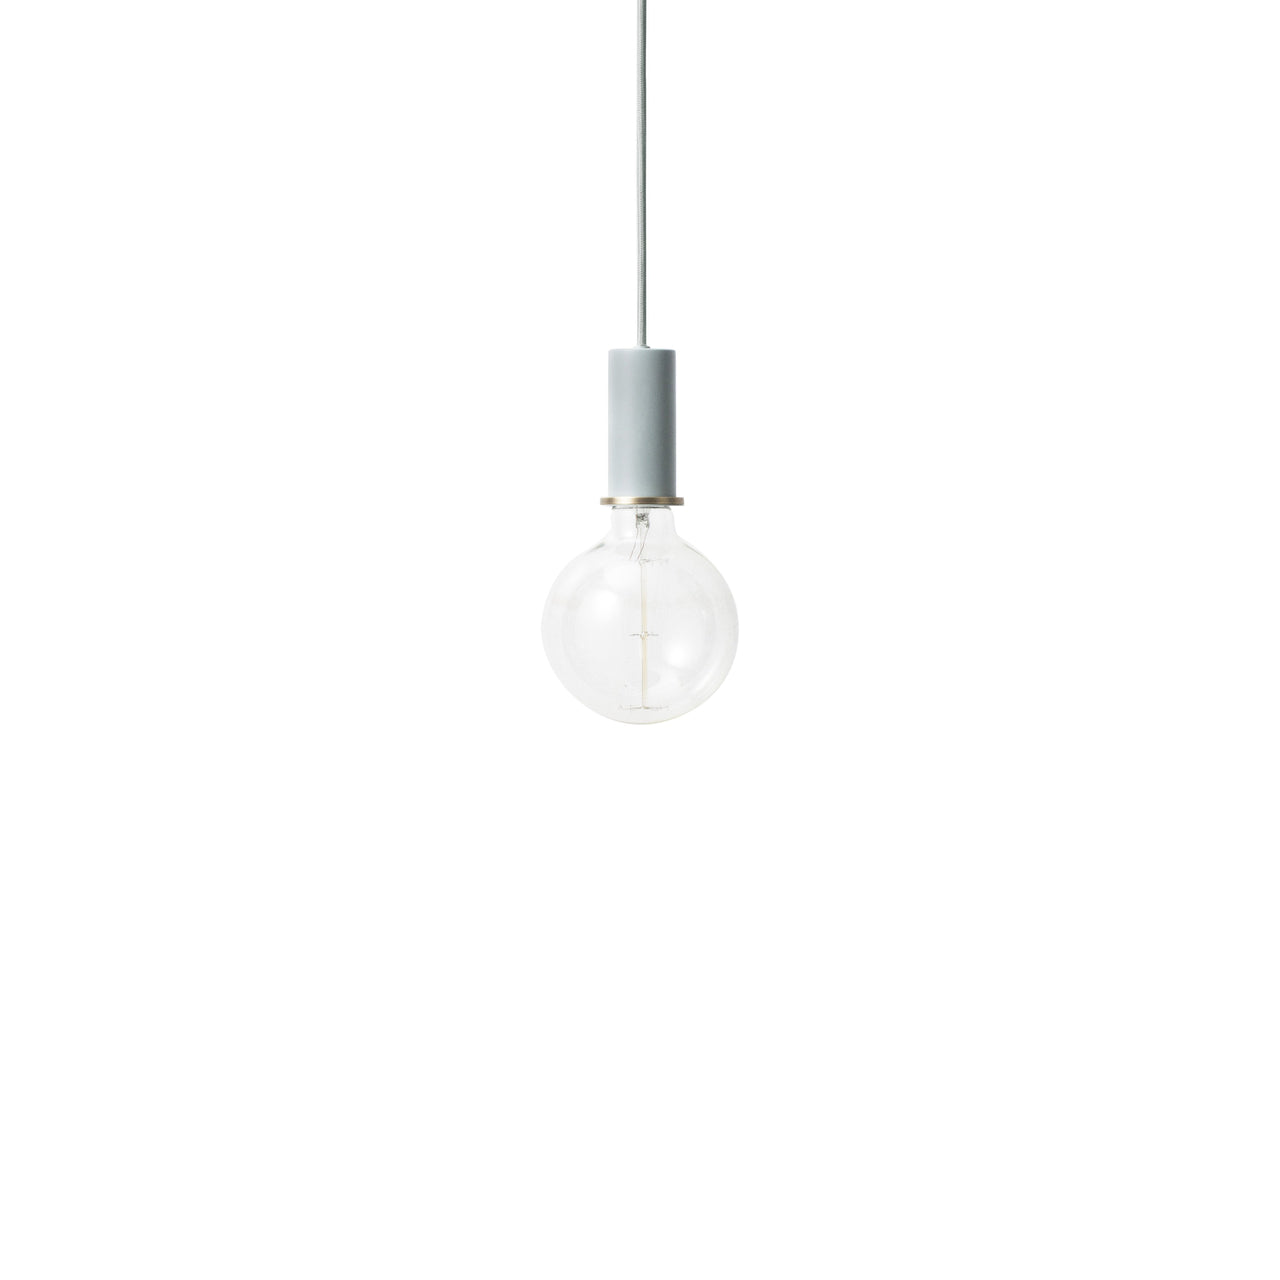 Collect Lighting: Pendant + Low + Dusty Blue